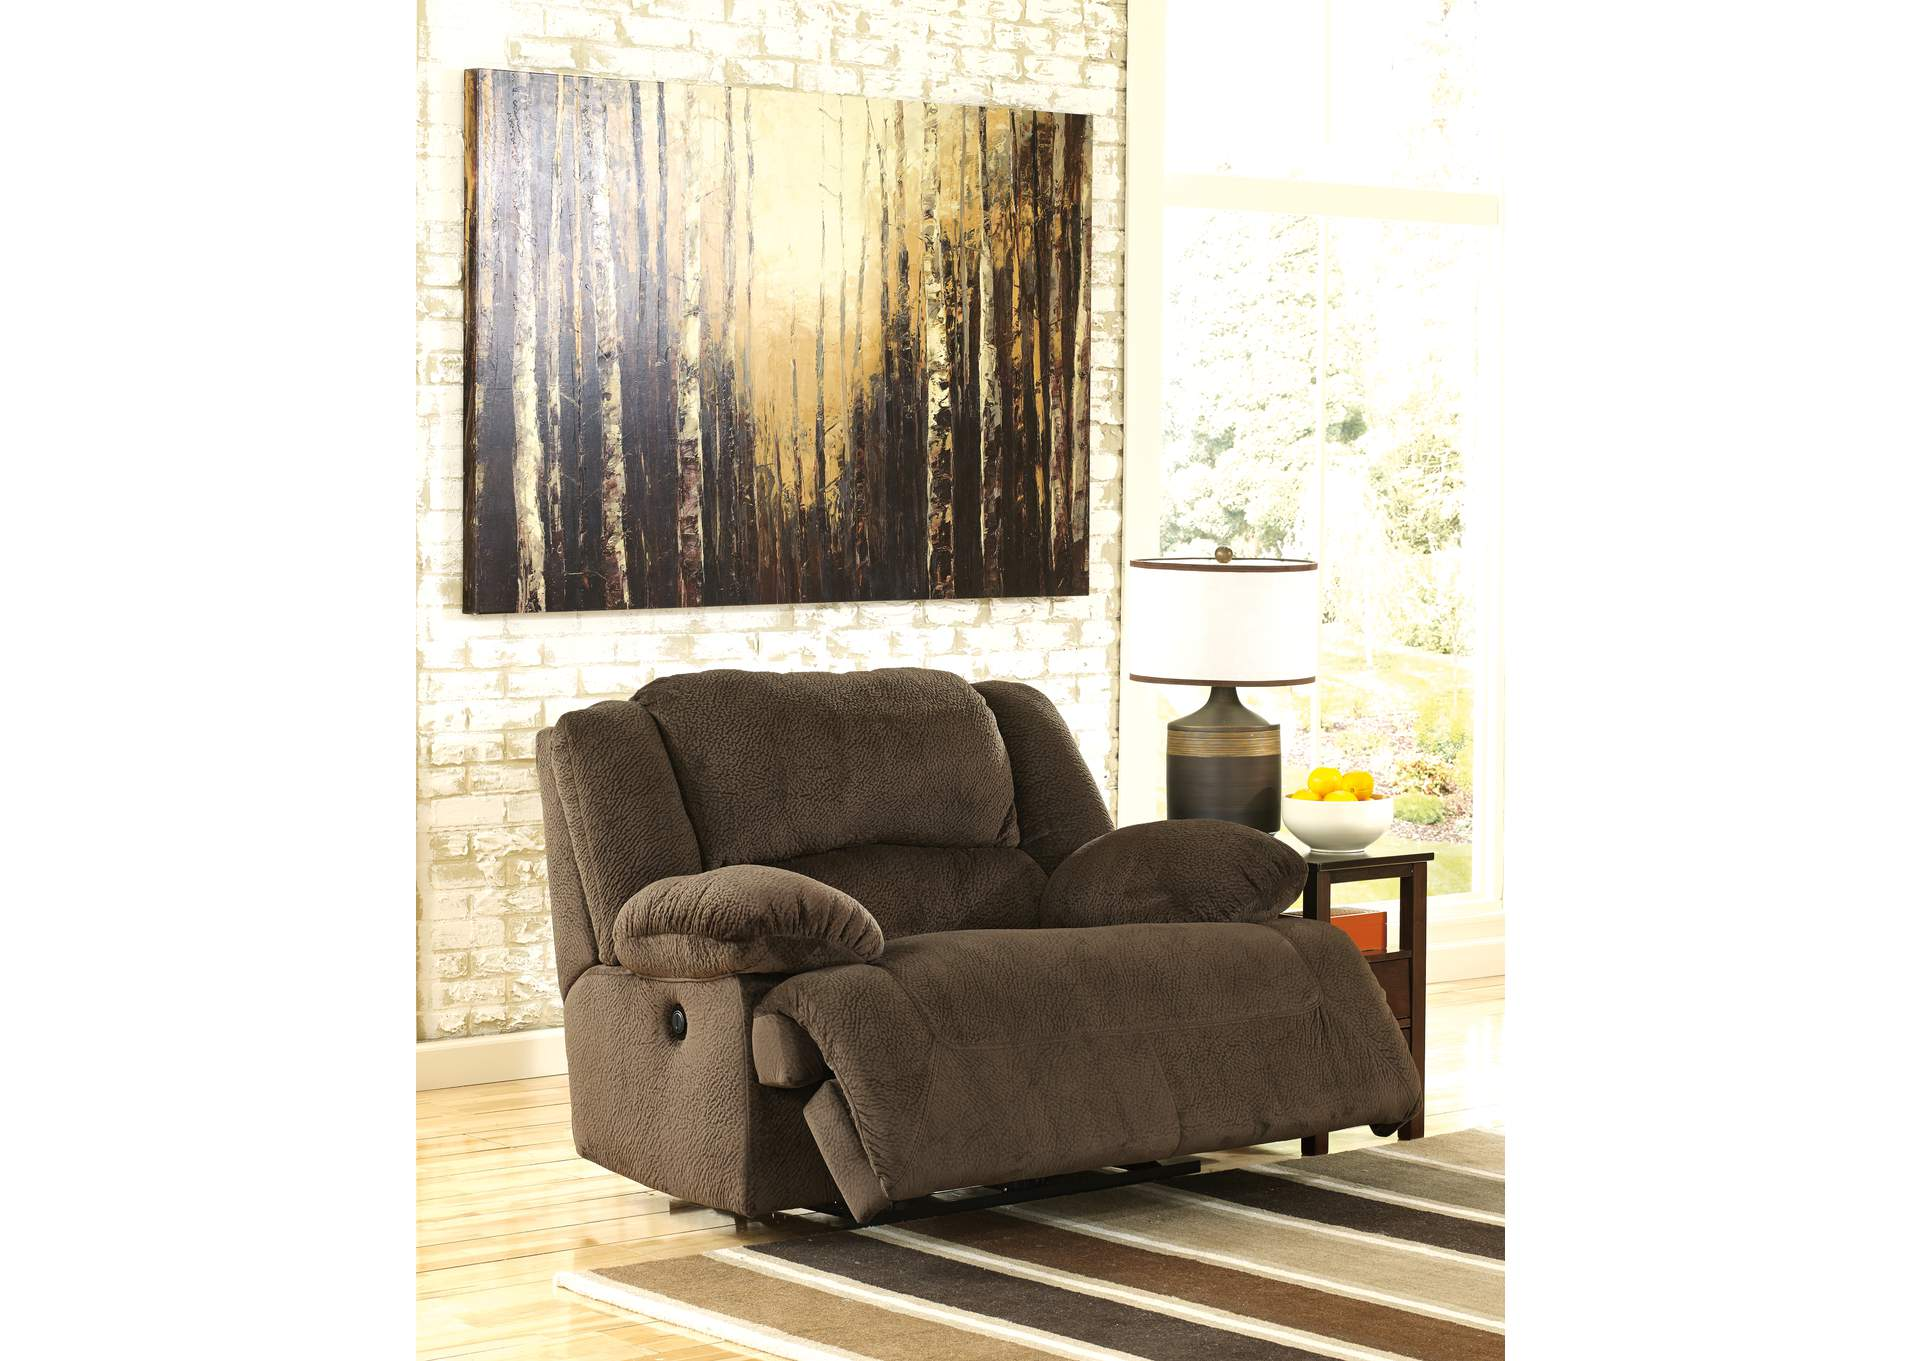 Toletta Chocolate Zero Wall Power Wide Seat Recliner,Signature Design By Ashley